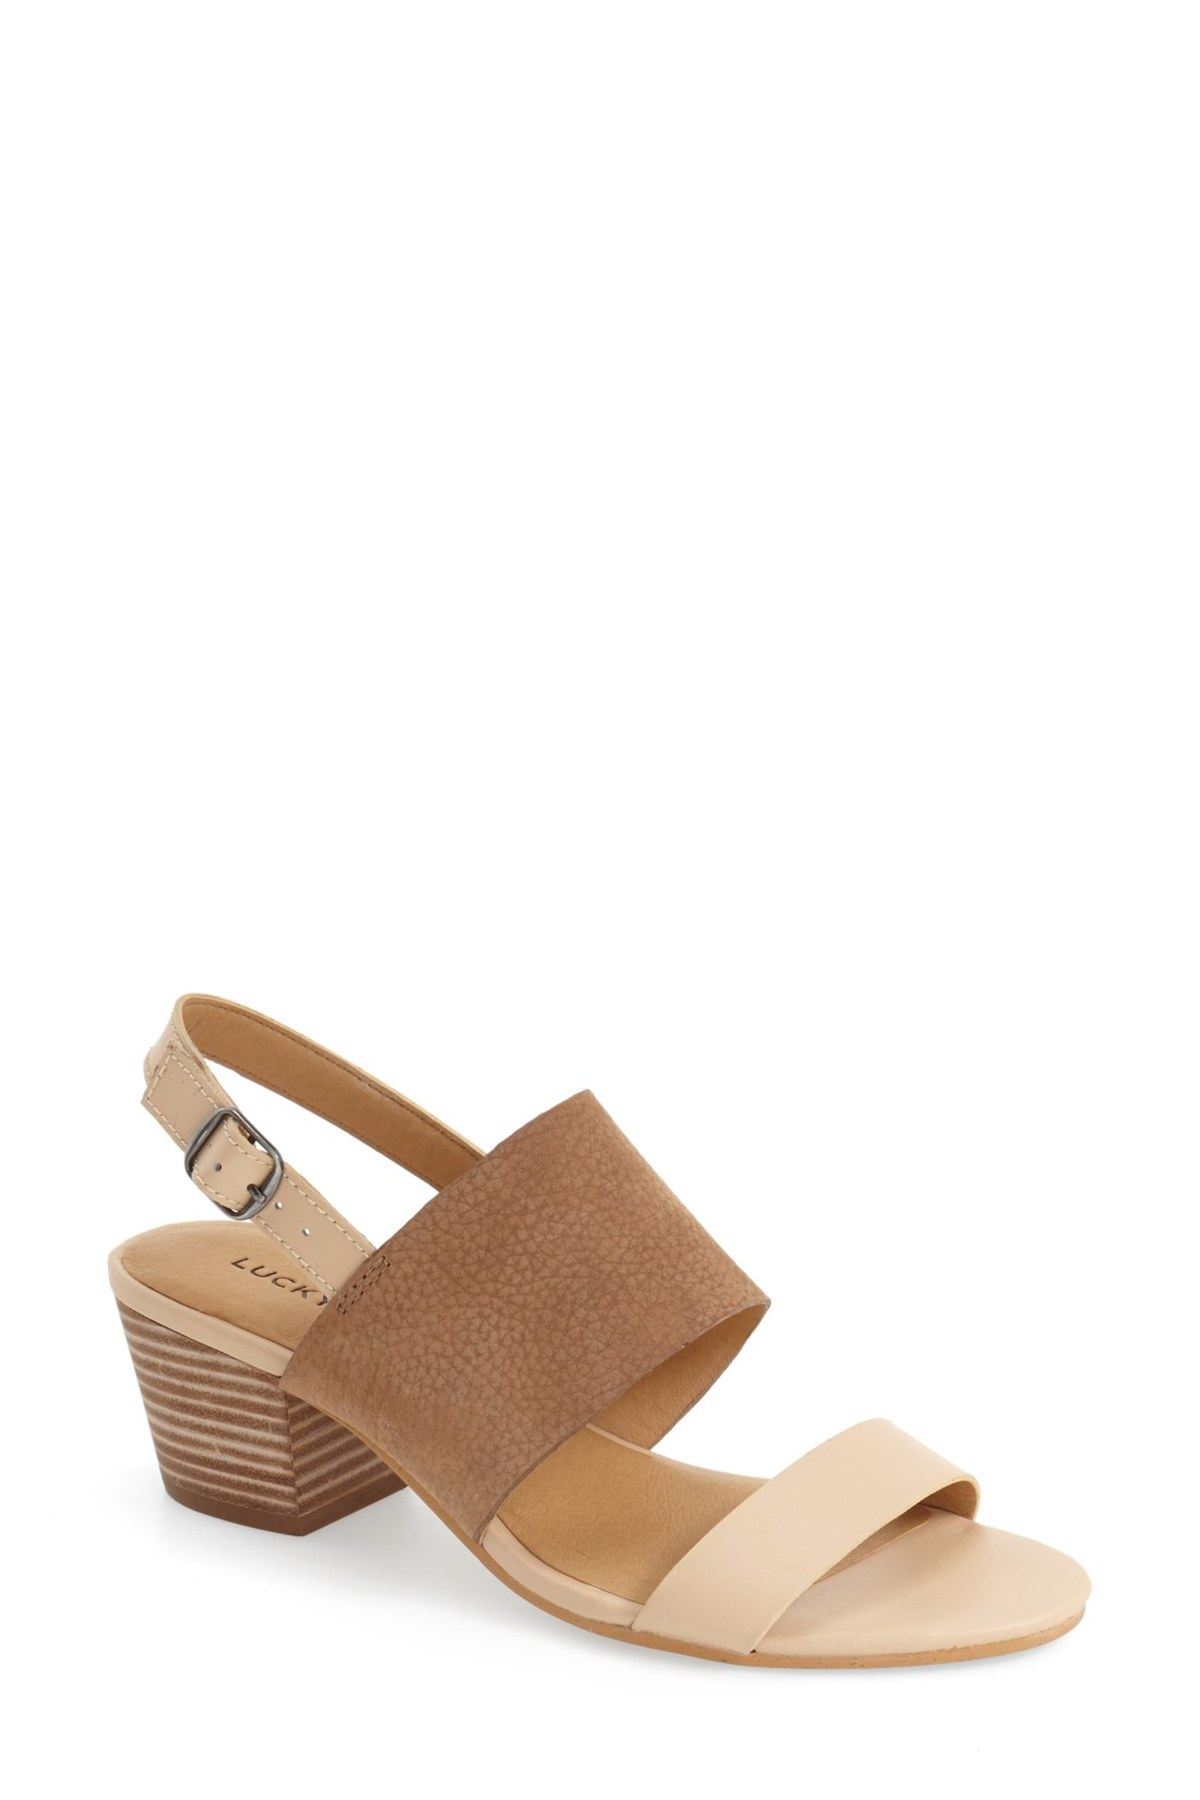 Lucky Brand Gewel Block Heel Sandal ($49.97). It's time to celebrate Momma.  Here is our Nordie's gift guide for items under $50! (Image: Nordstrom)